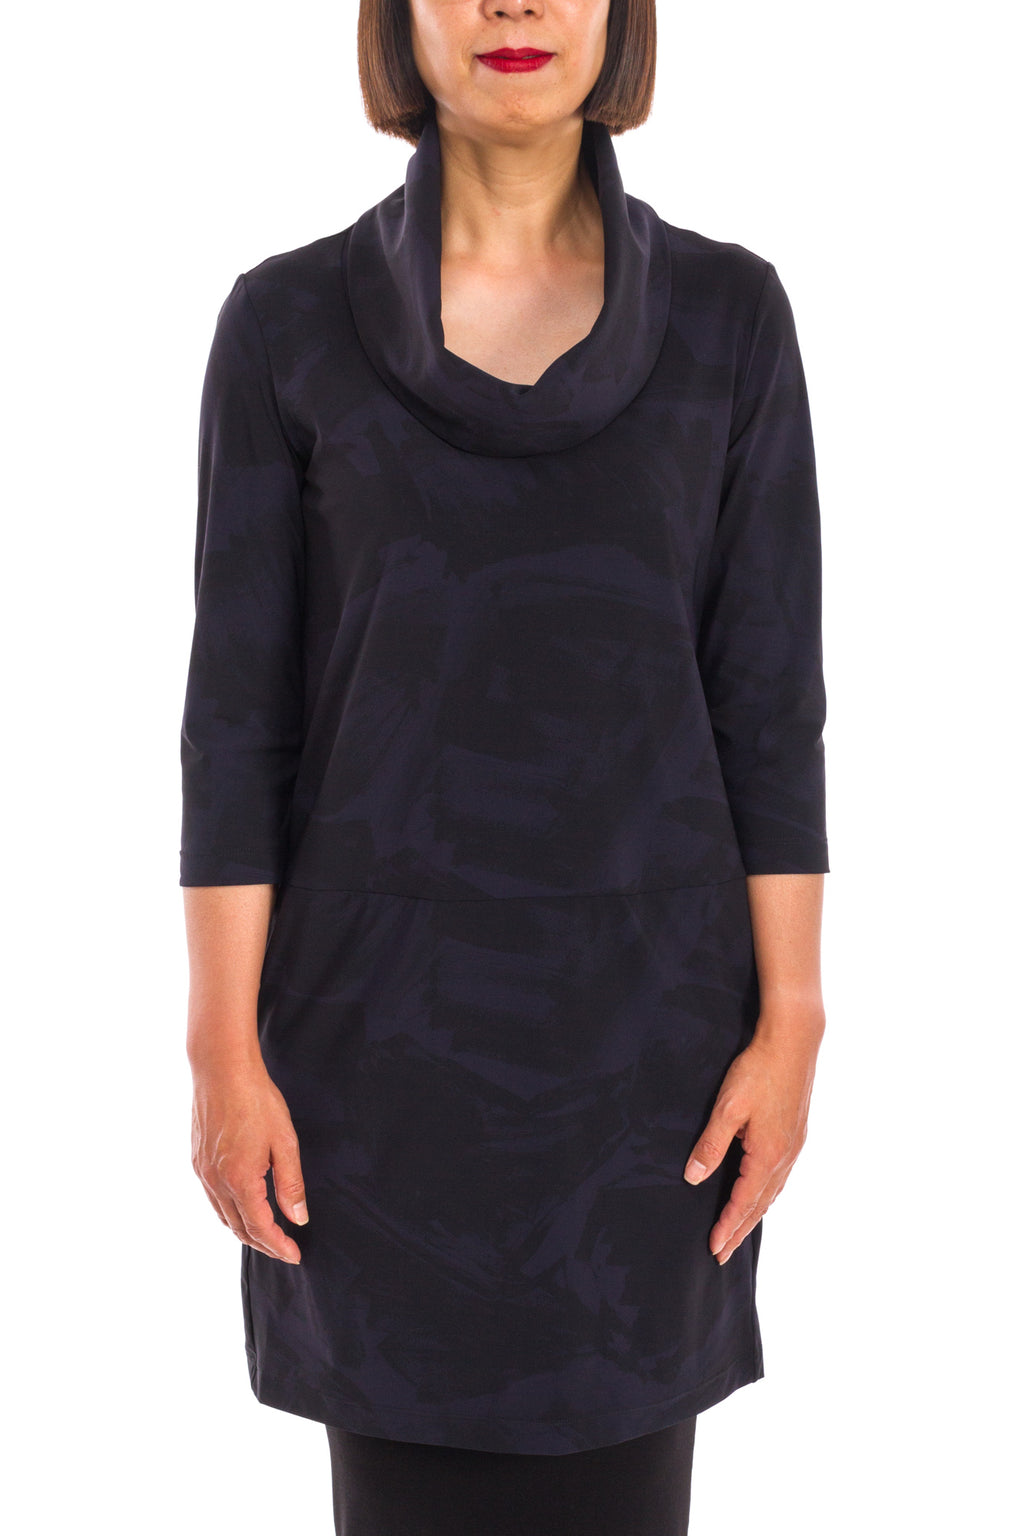 Viking Tunic in Midnight Shodo Print